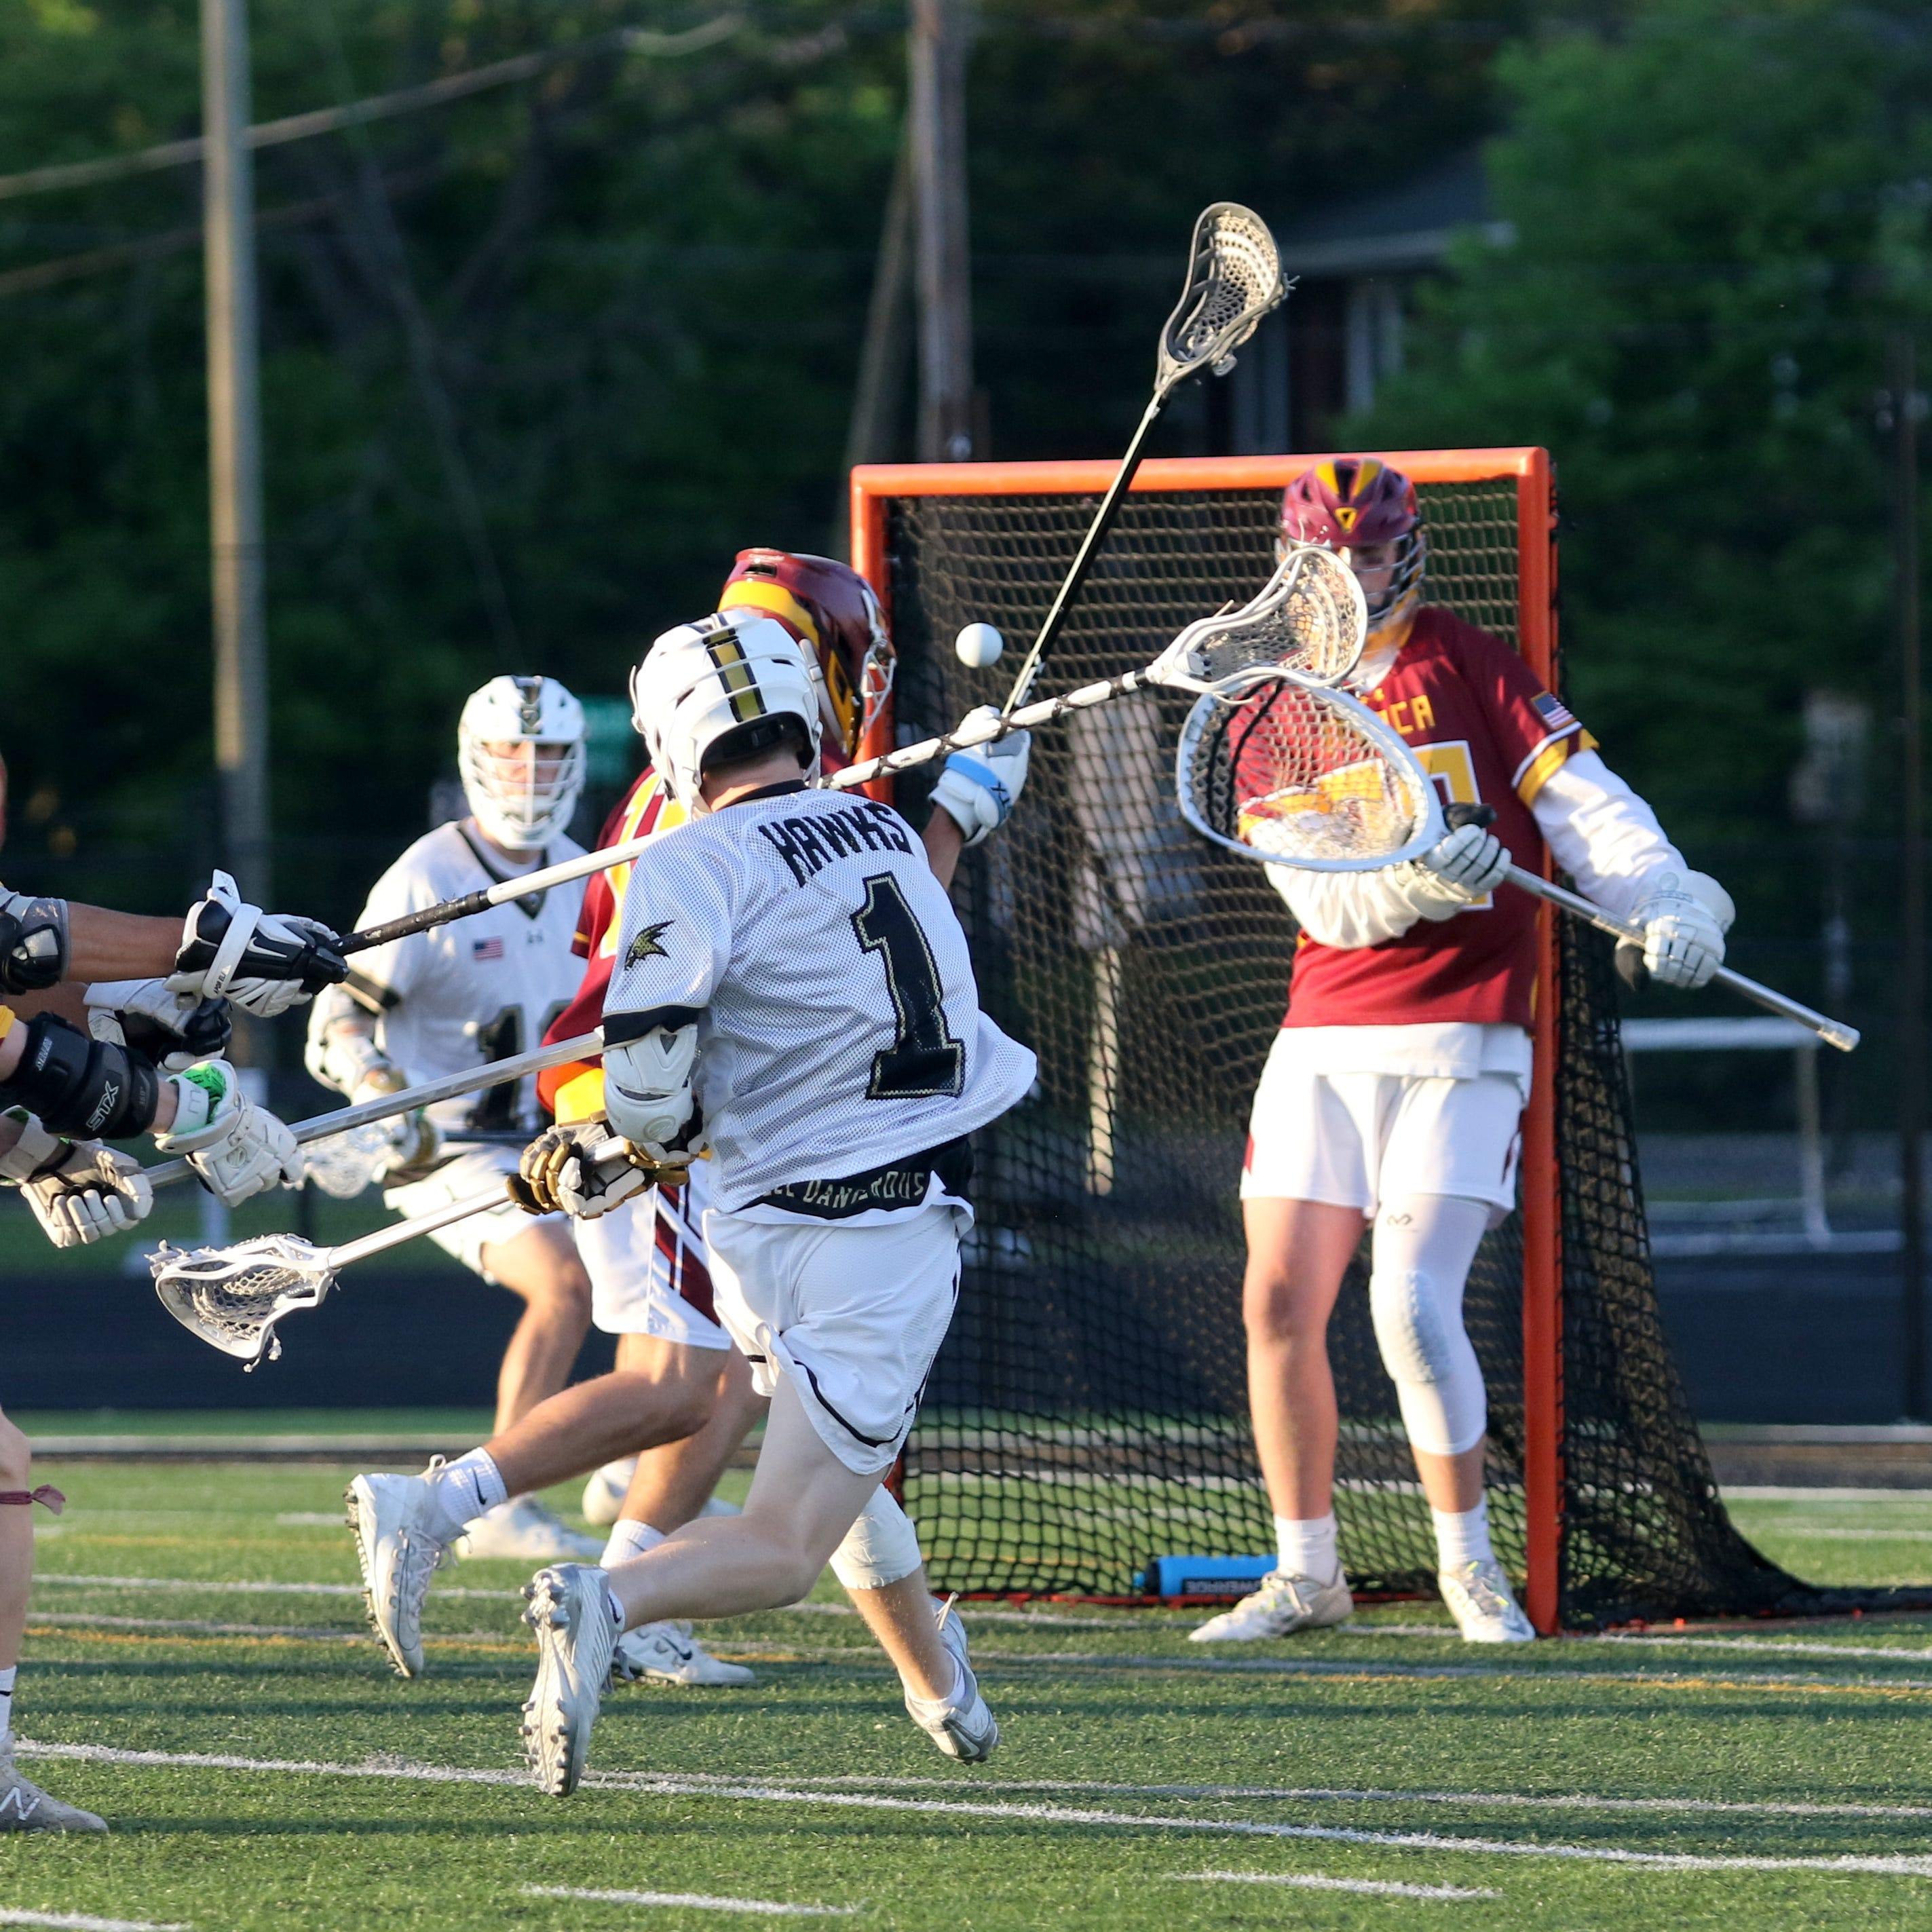 Corning boys reclaim Class A sectional lacrosse title in dominant fashion